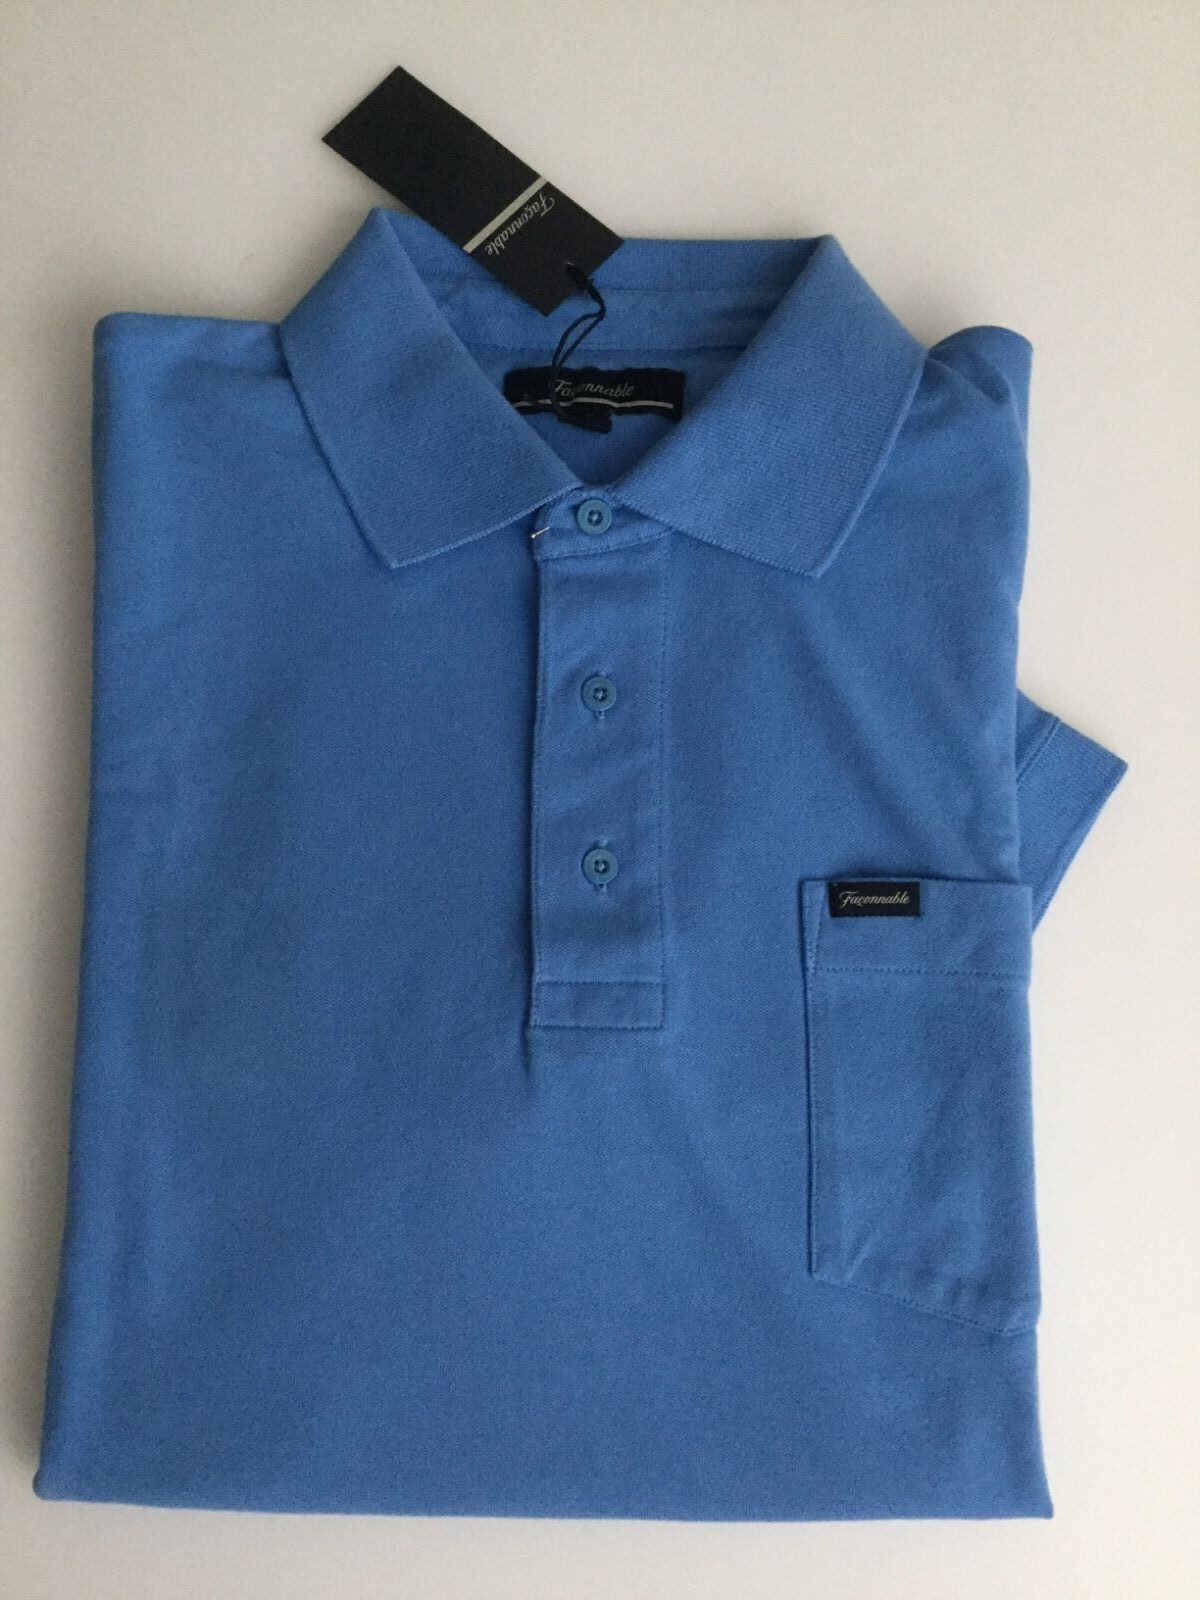 8254fcc9 BNWT FACONNABLE MEN'S blueE COTTON SHORT SLEEVE CLASSIC POLO SHIRT SIZE L